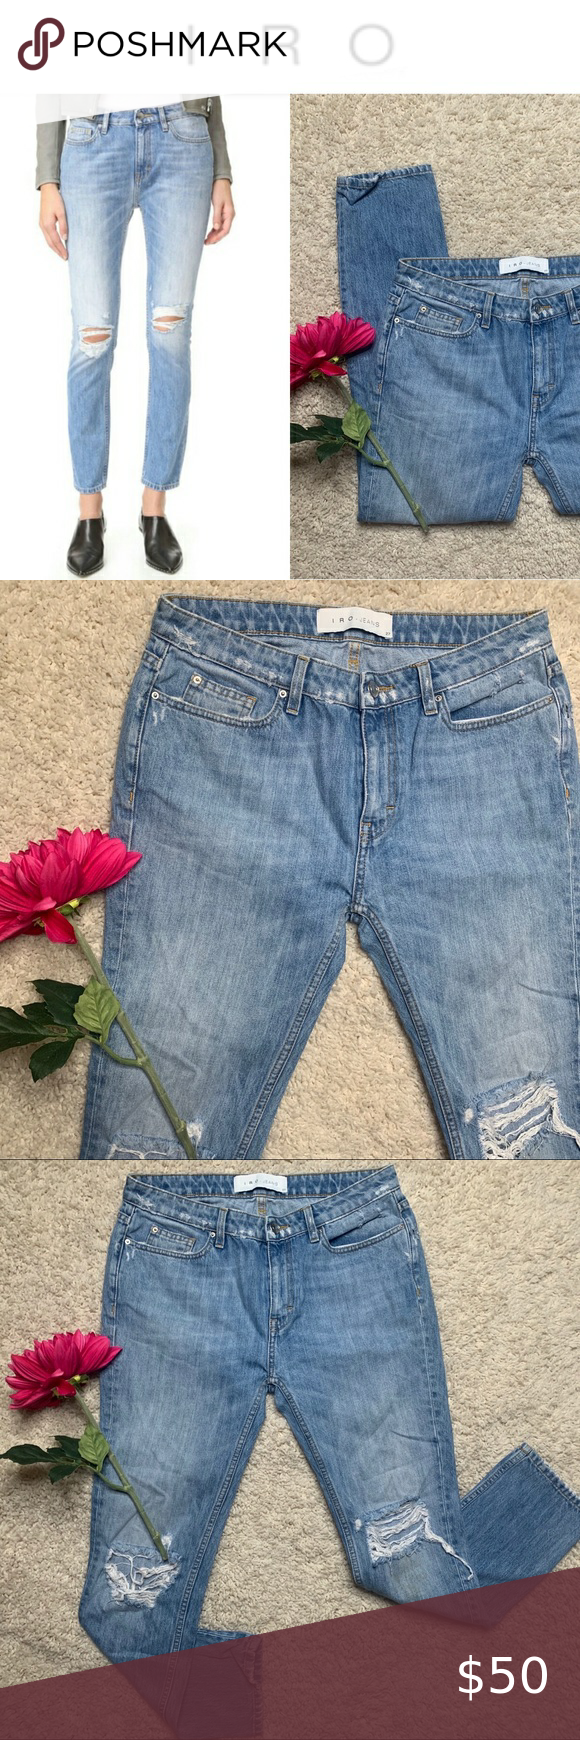 25755e7d0b8c7c883445bd576310b4d0 - How To Get Dirt Stains Out Of Light Jeans